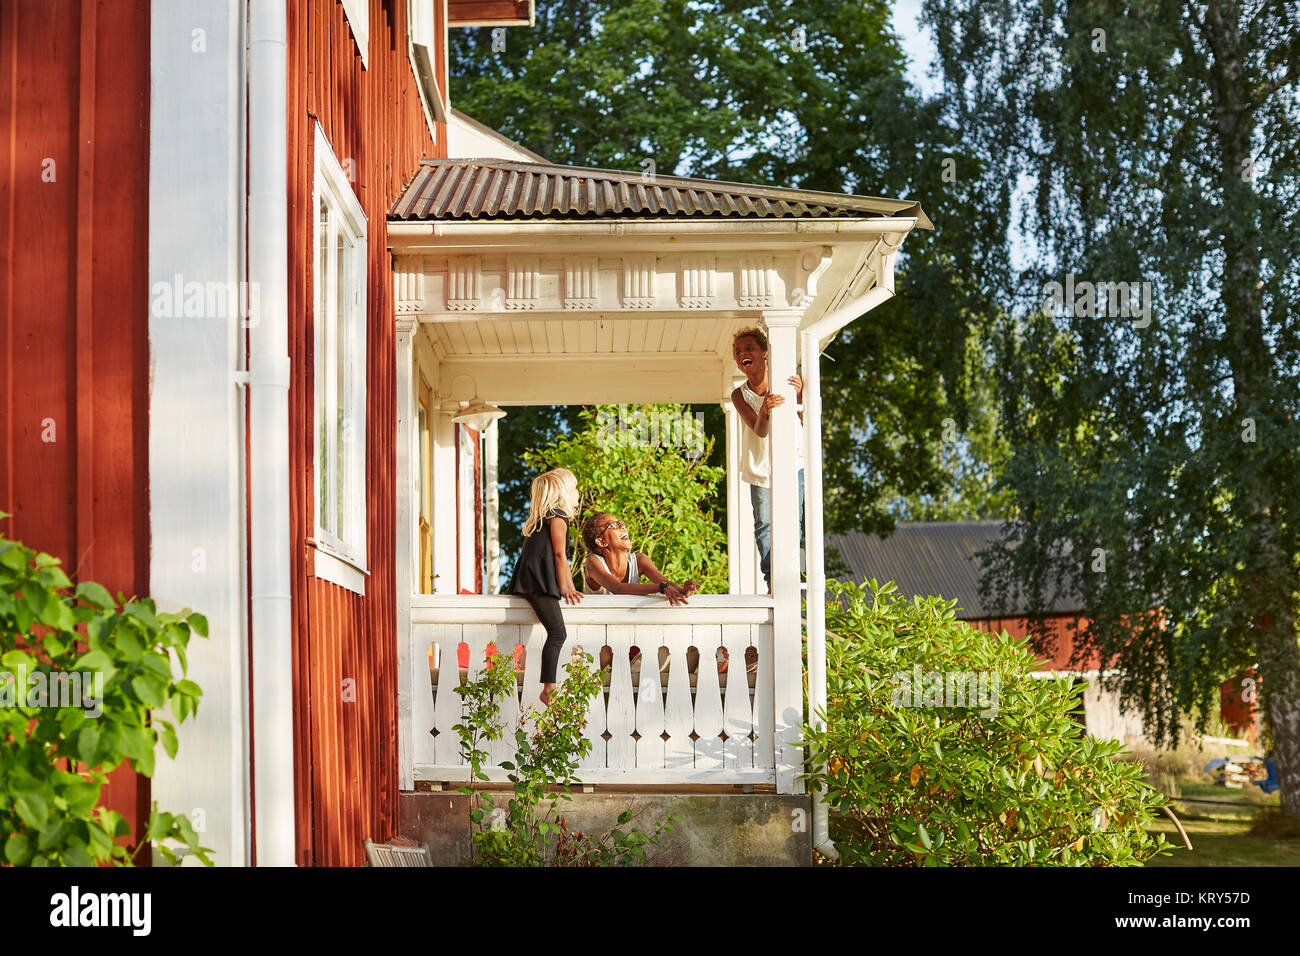 Children playing on portico - Stock Image